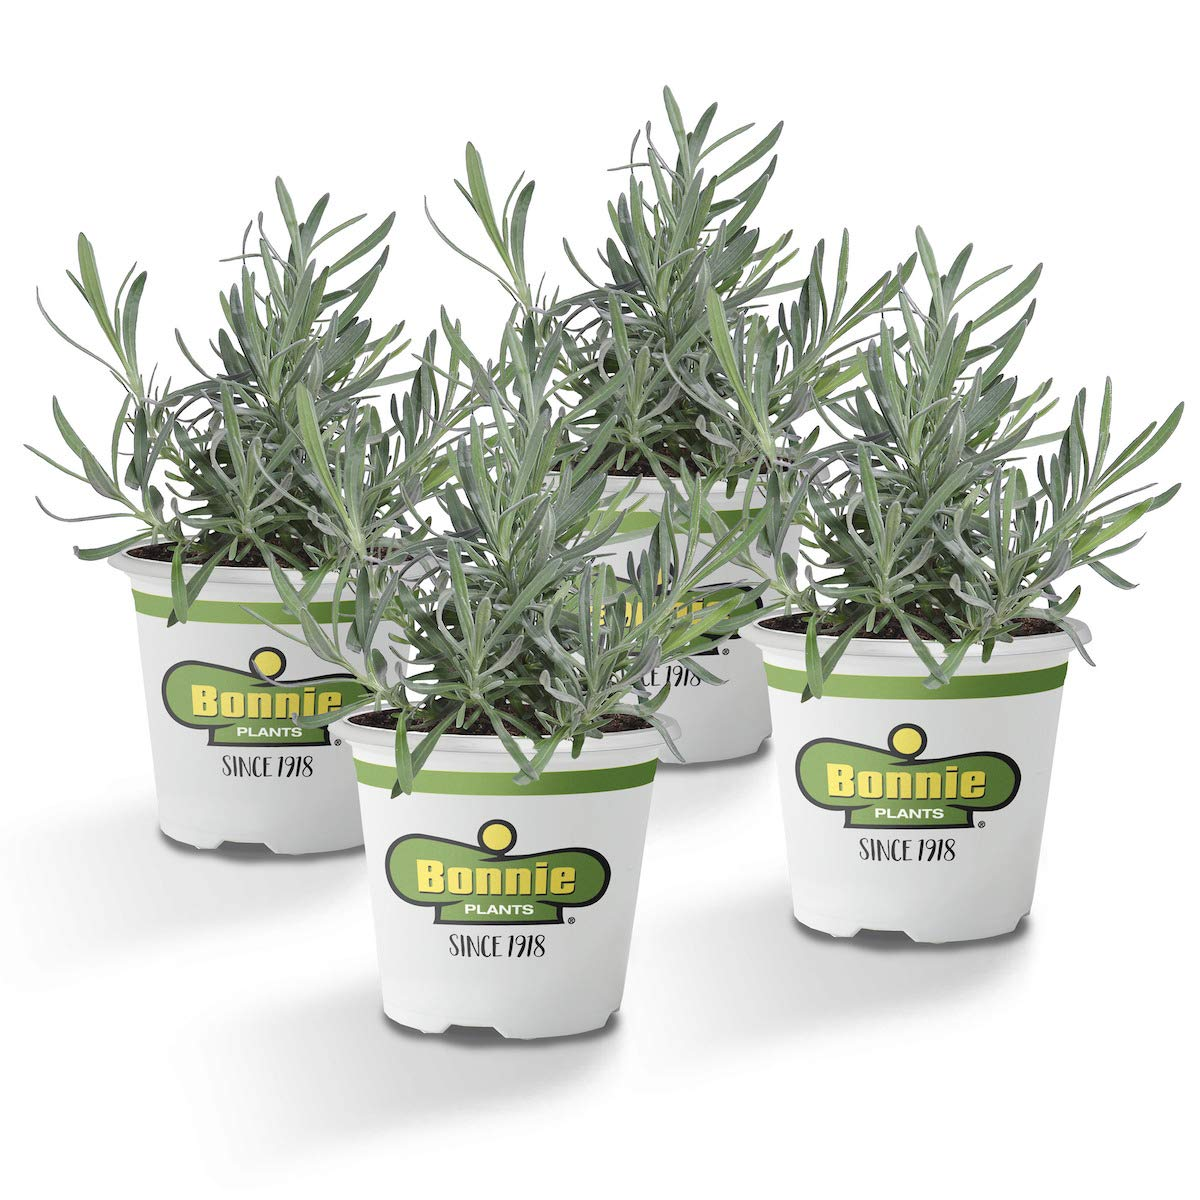 Bonnie Plants Lavender Live Edible Aromatic Herb Plant - 4 Pack | 12 - 14 in. Tall Plant | Baking, Teas, Sugars, Jellies